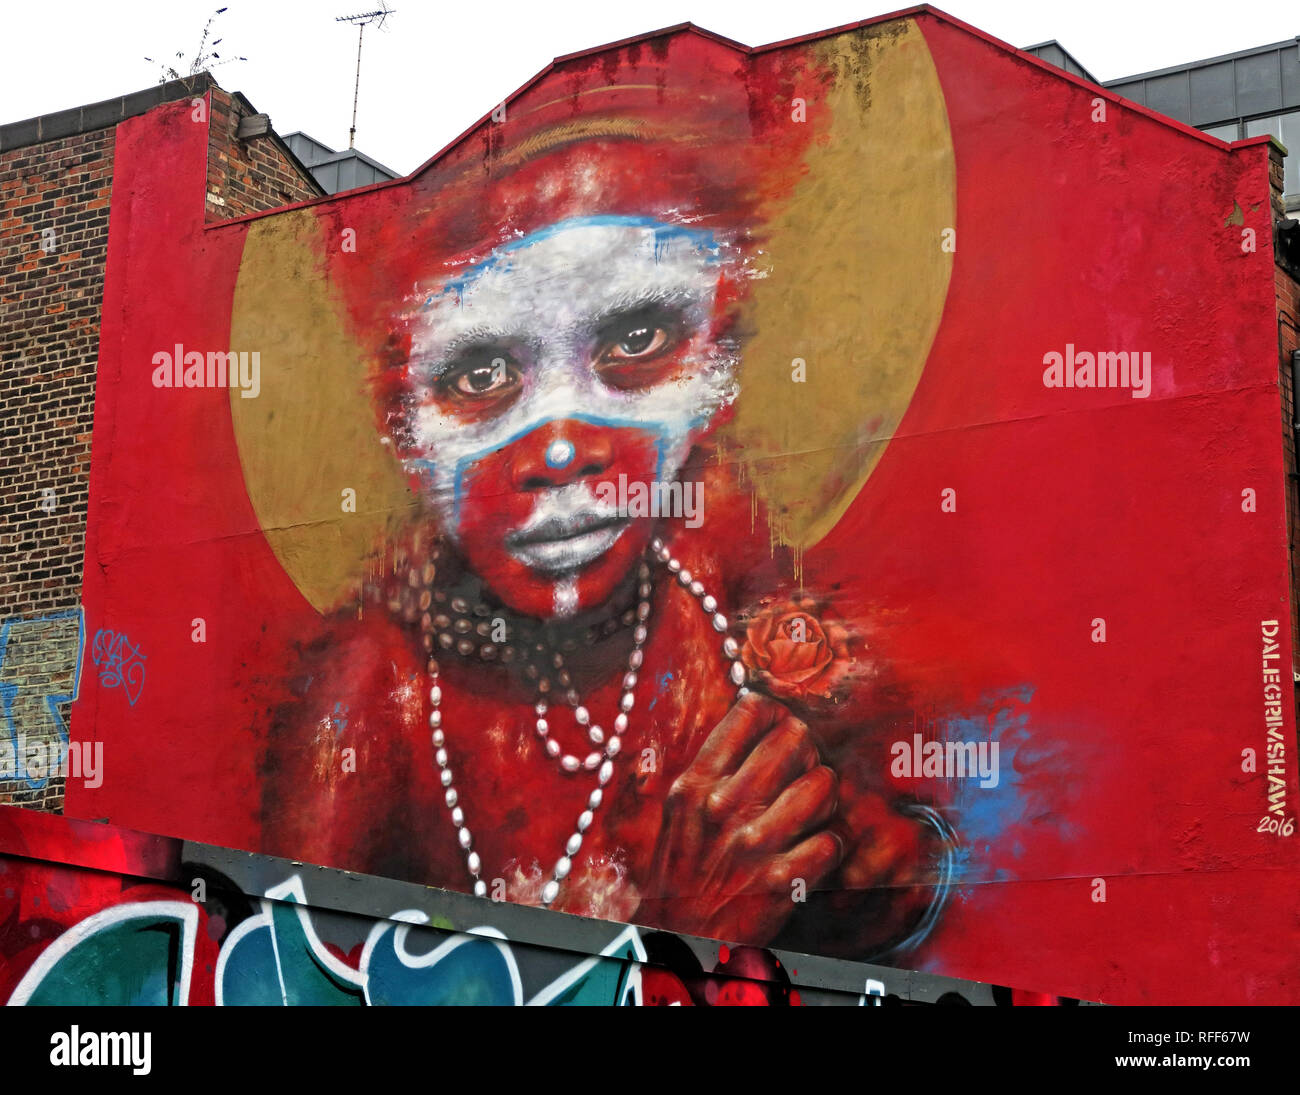 Aboriginal face on red background of graffiti, Spear St, Northern Quarter, Manchester, England, UK - Stock Image